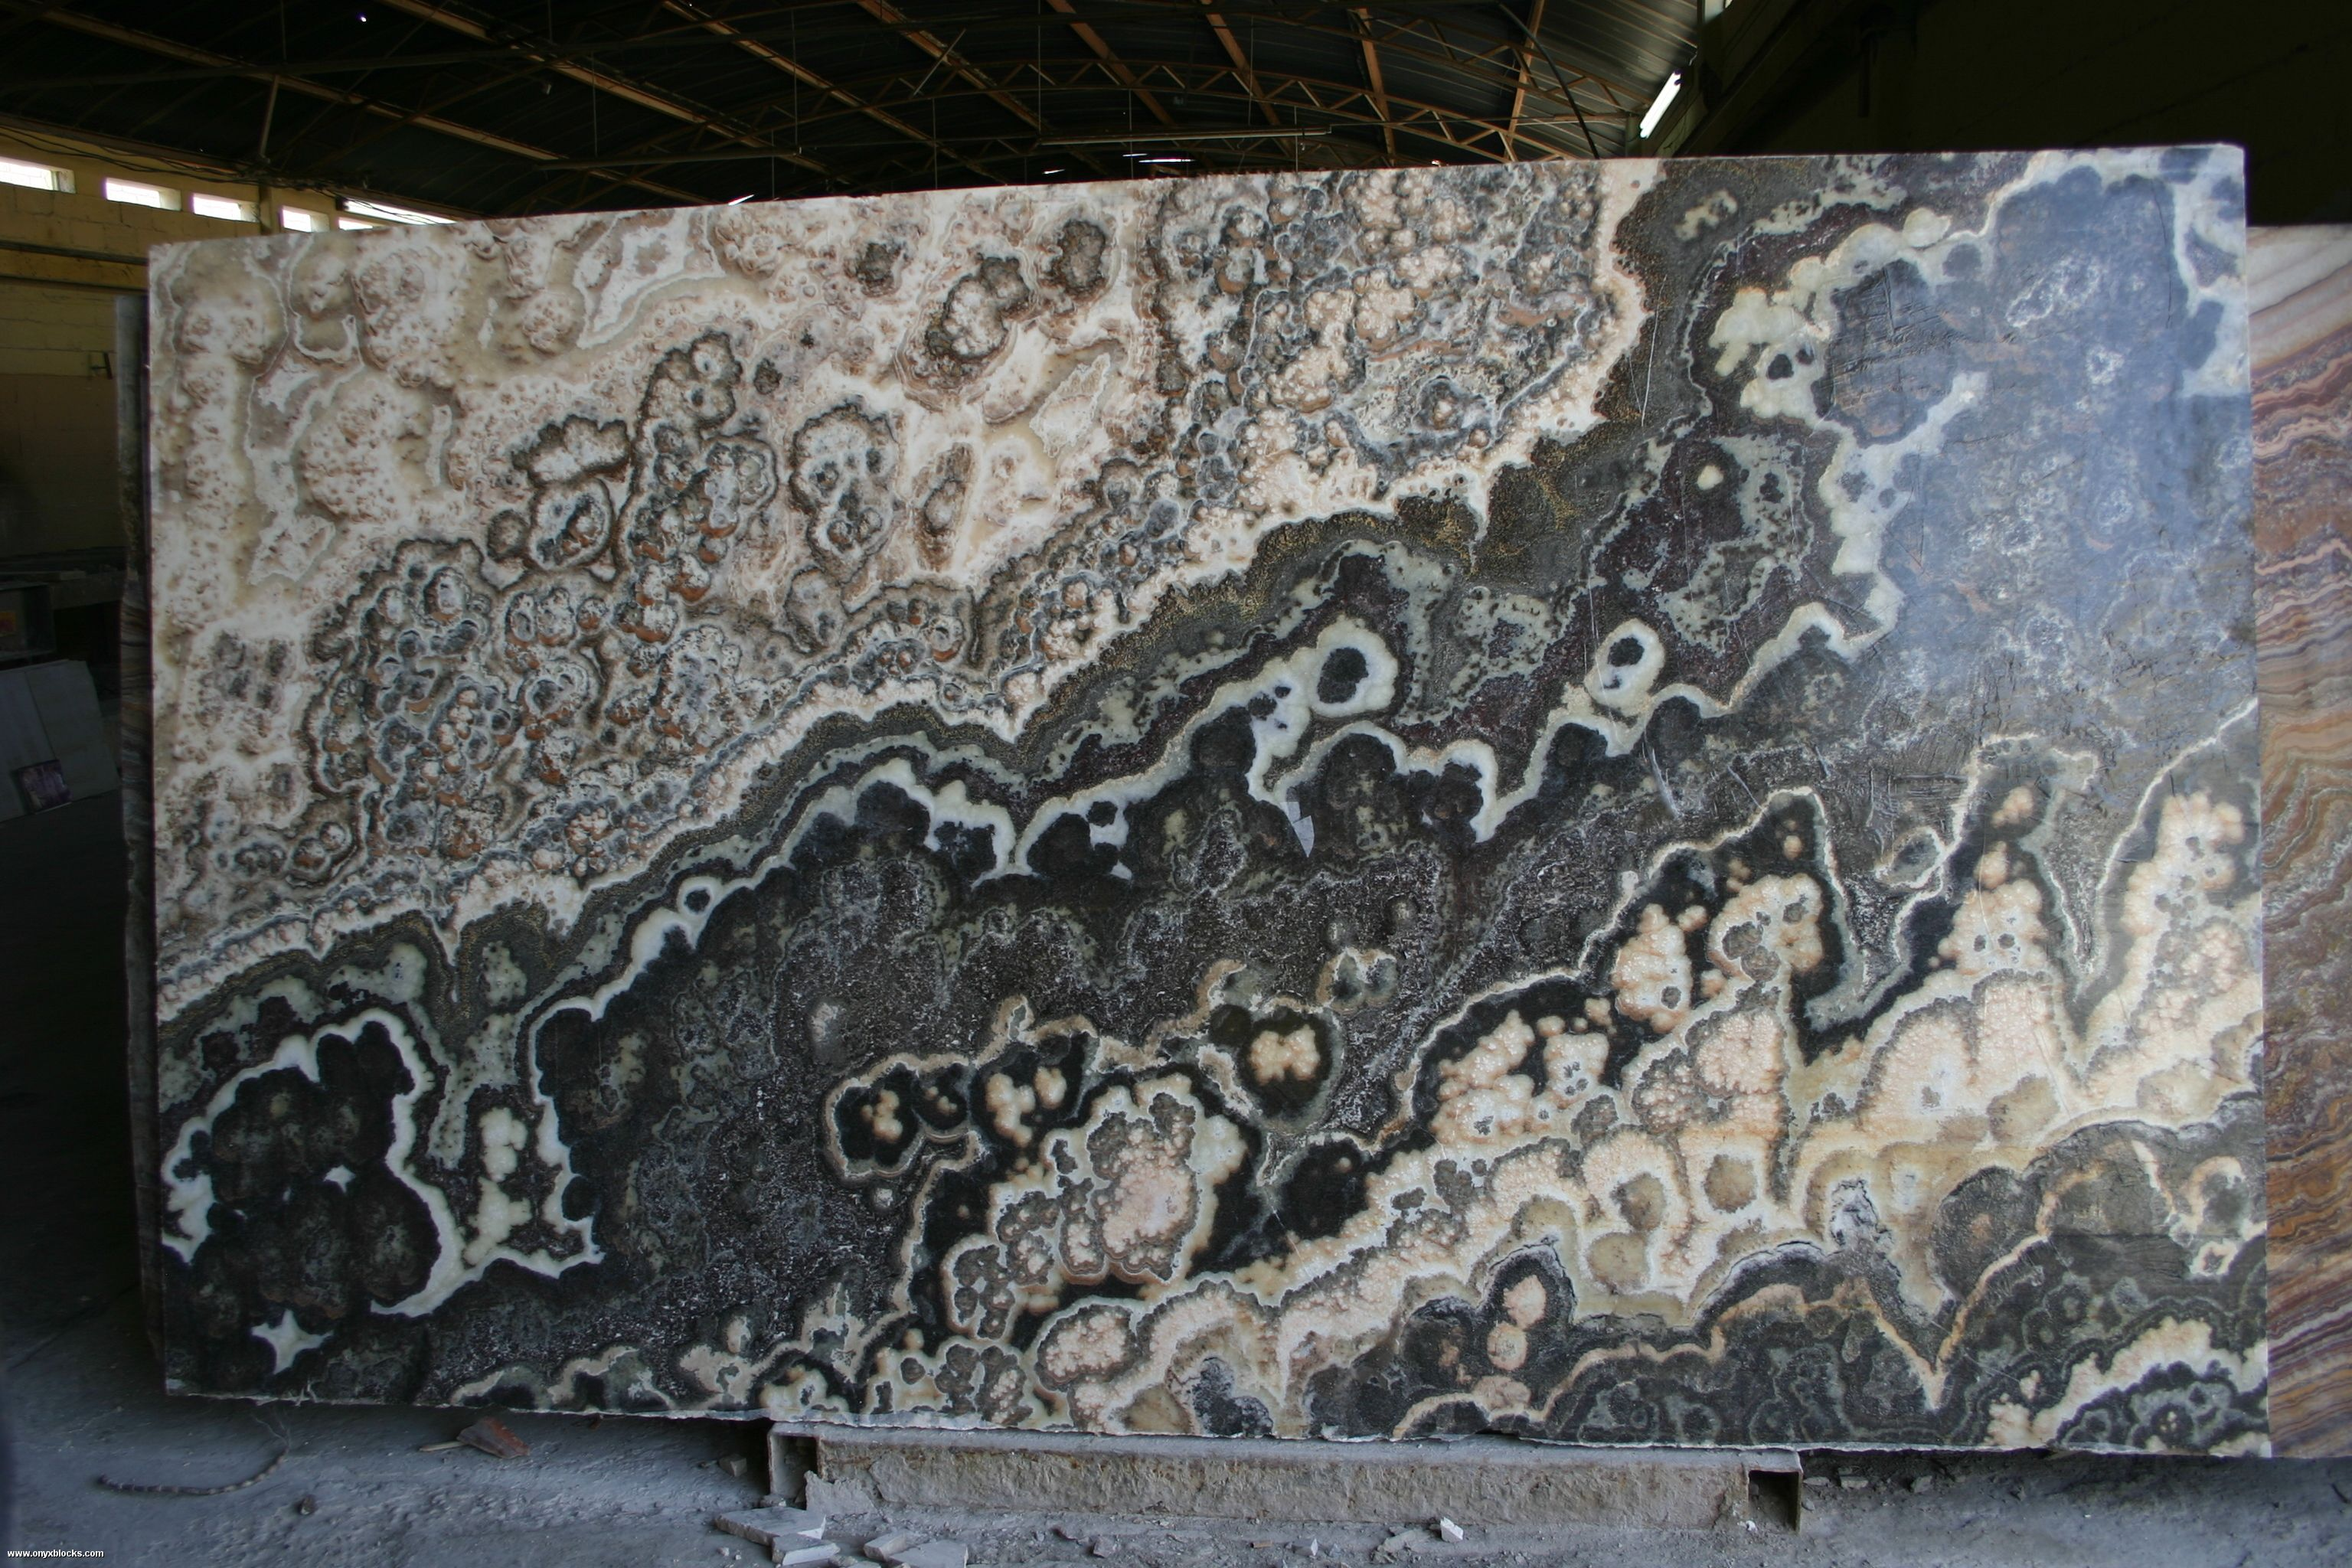 Black Onyx Slabs http://www.onyx.com.mx/black